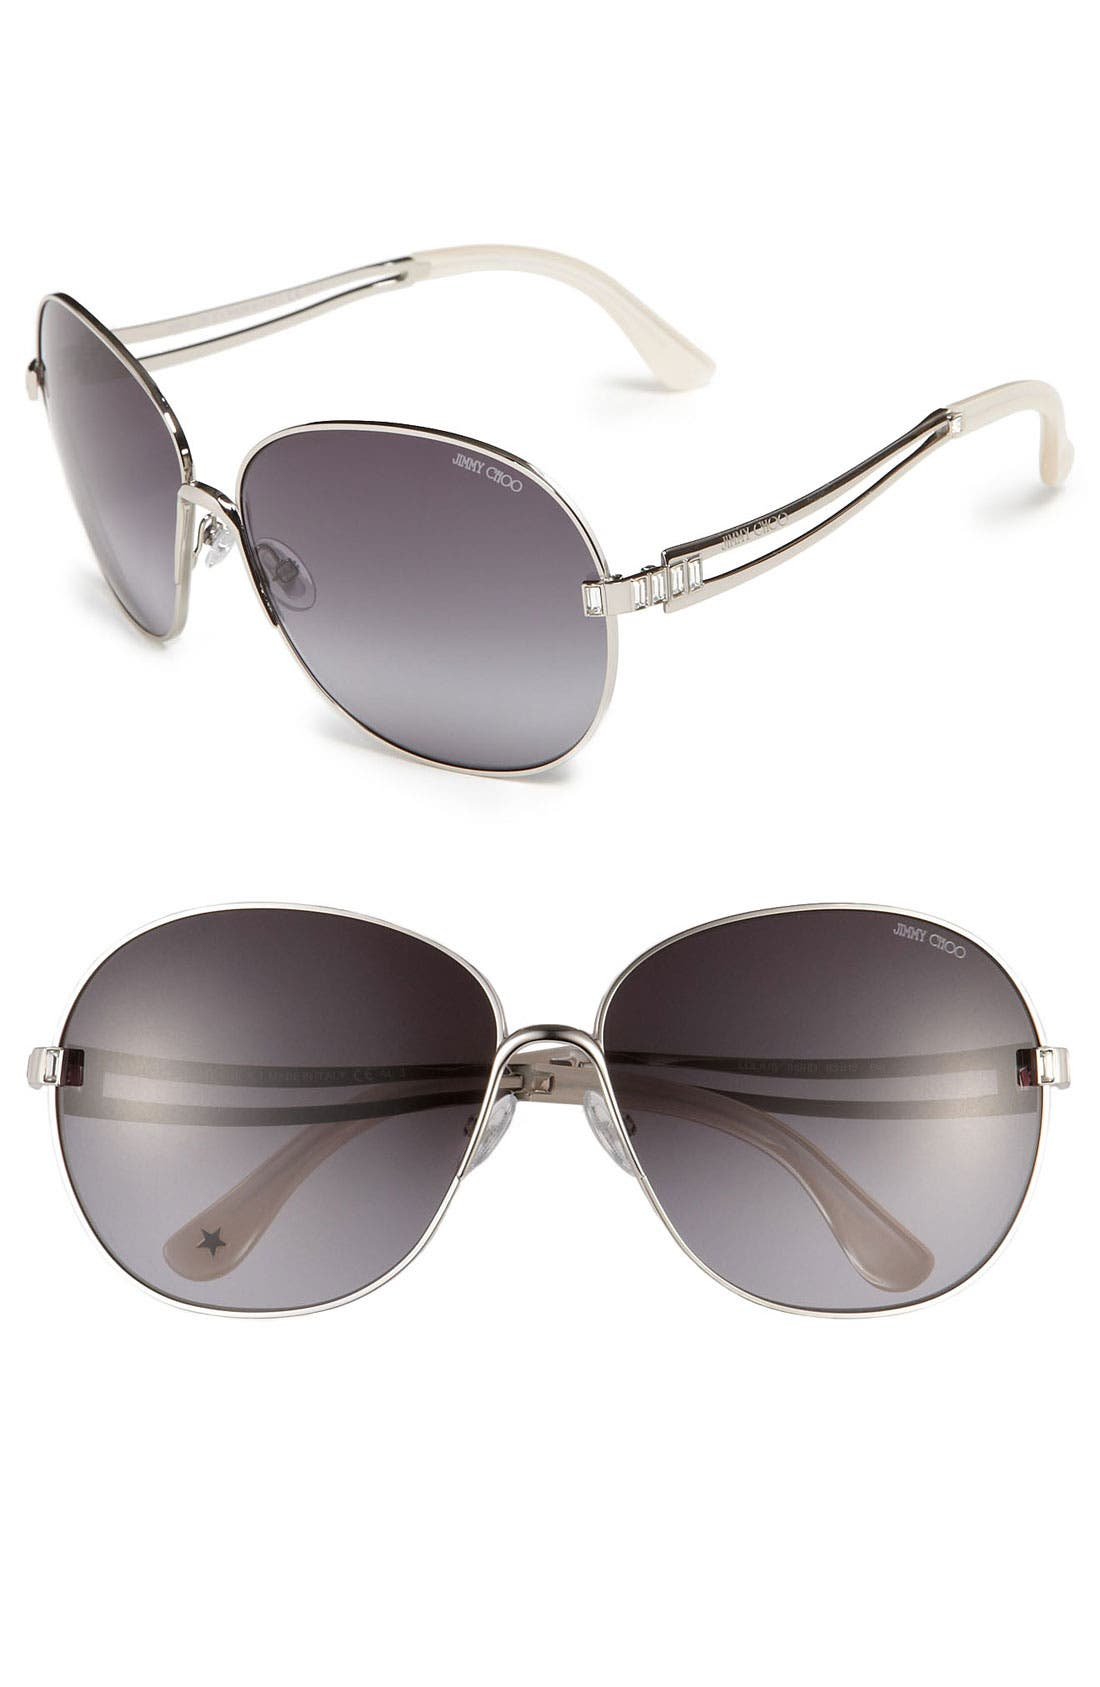 Main Image - Jimmy Choo 'Lola' Retro Metal Sunglasses